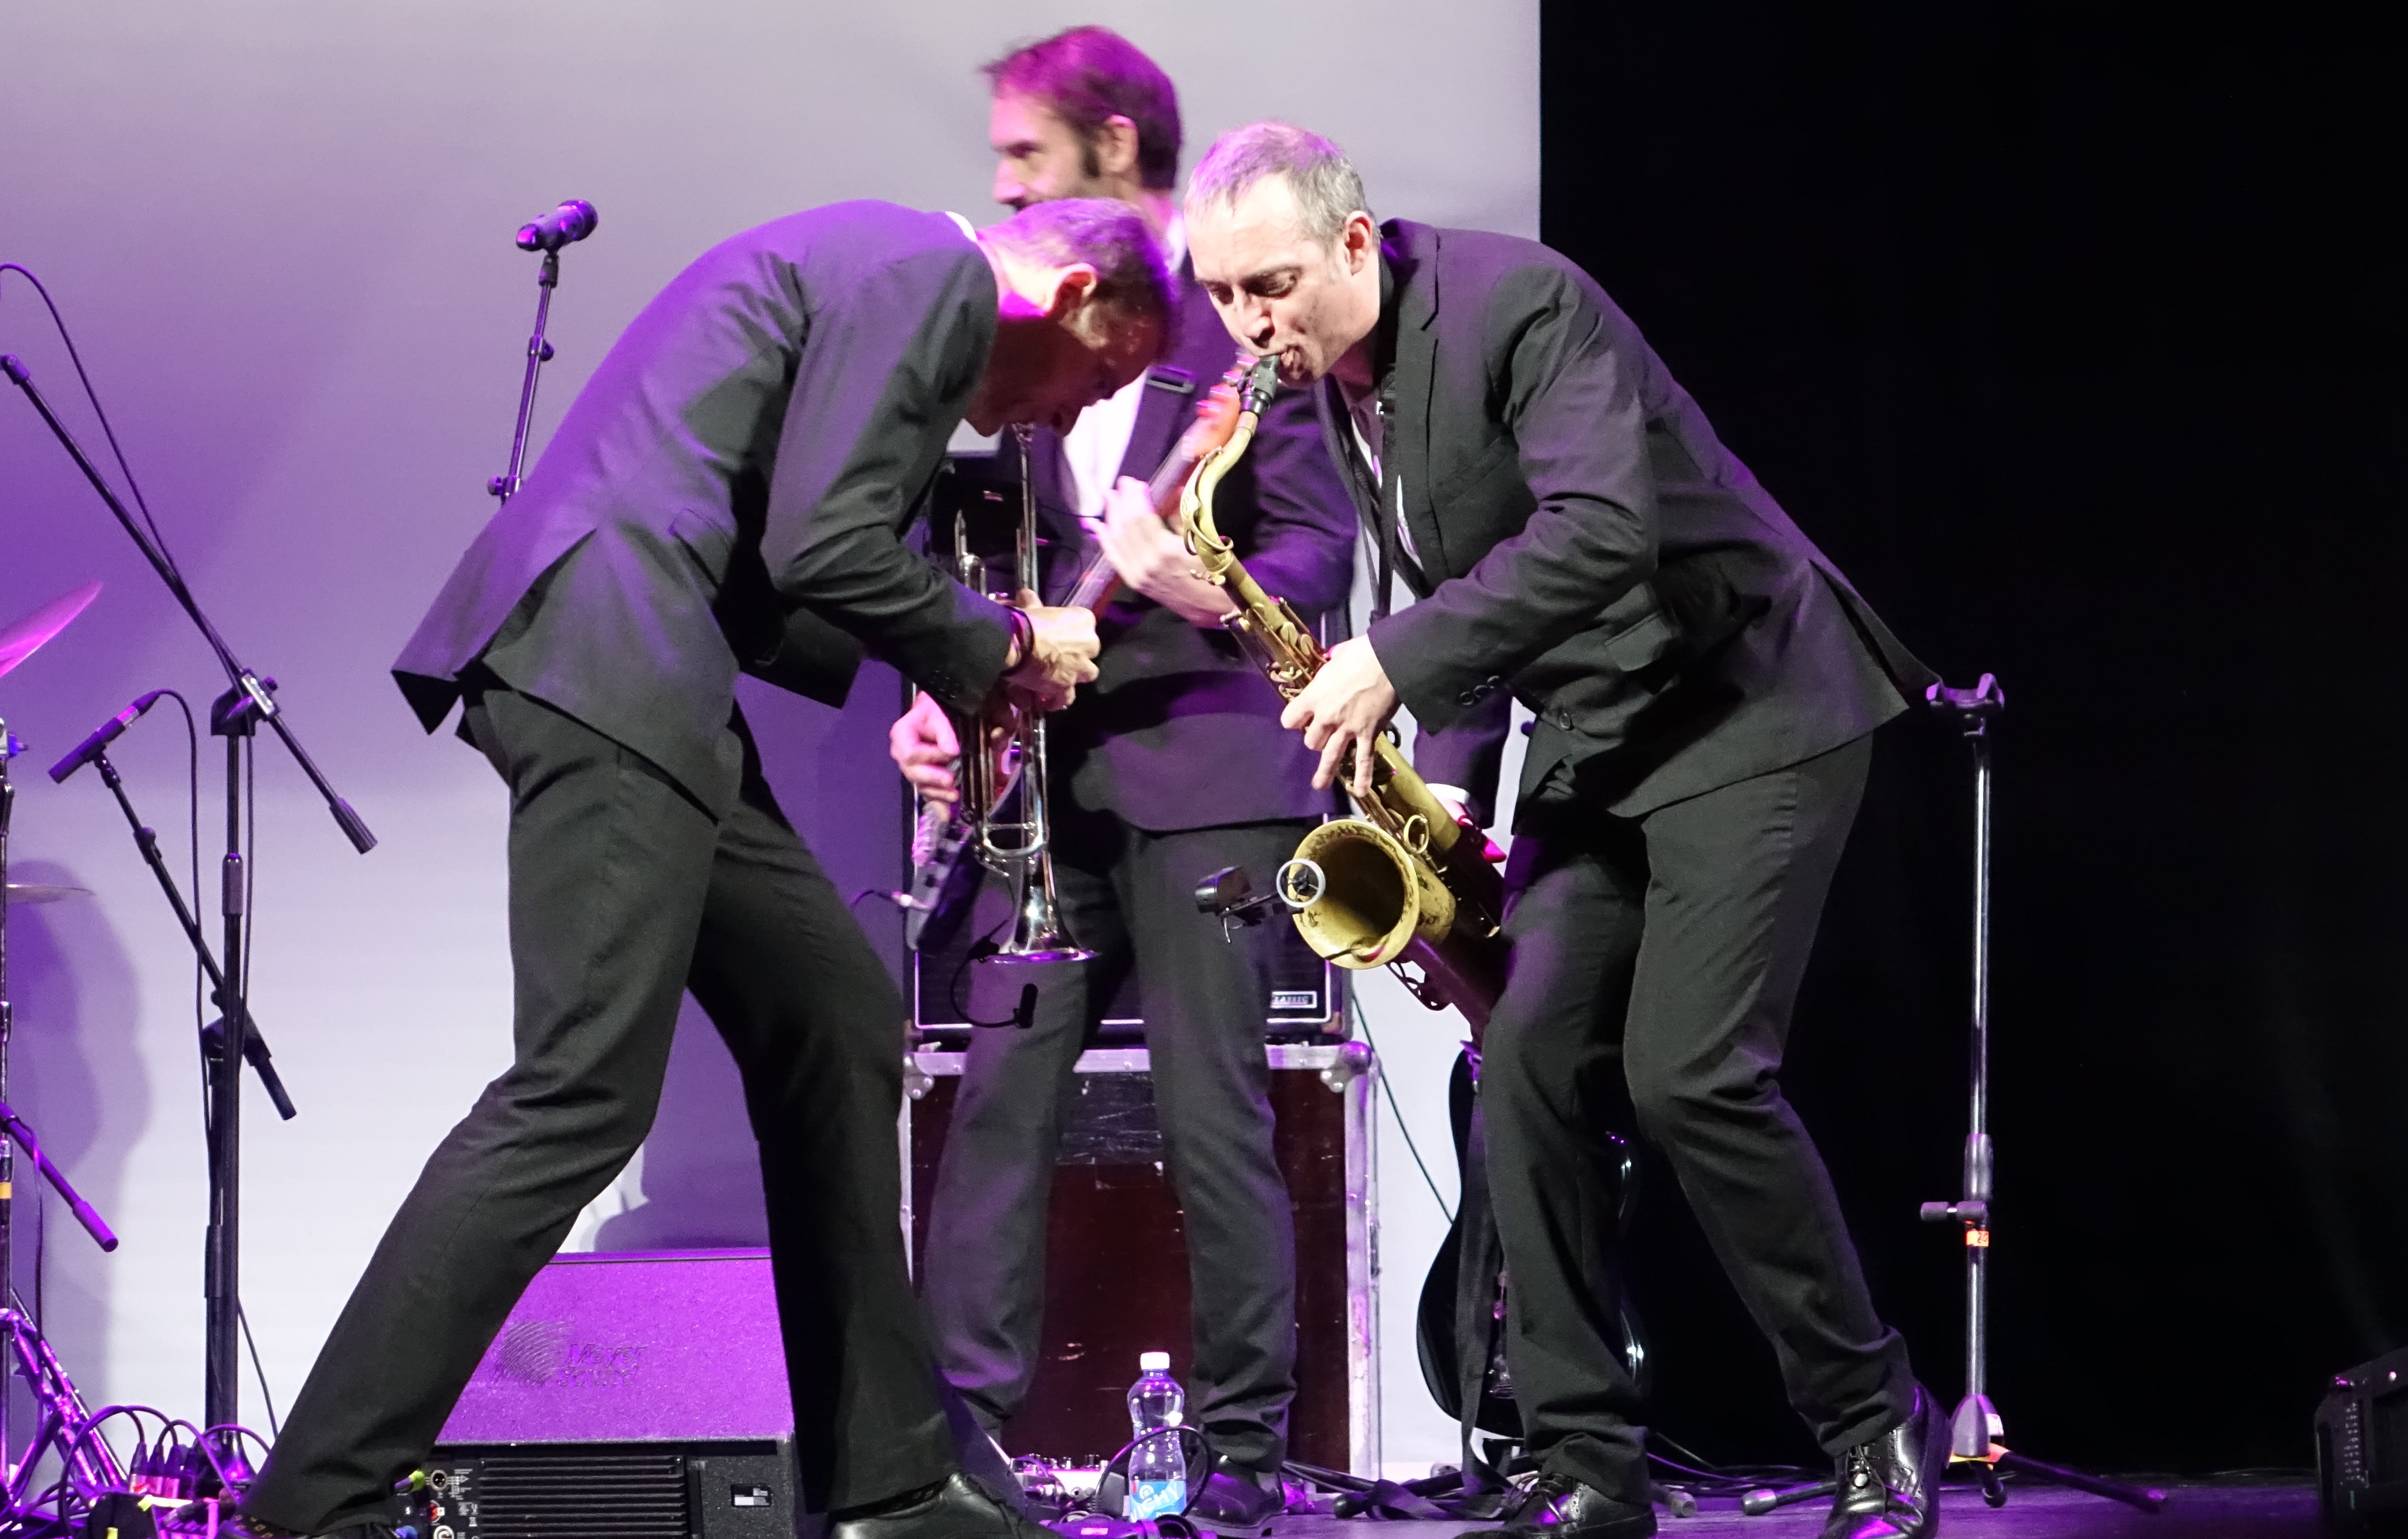 Pete Judge, Jim Barr and Jake McMurchie at the Vilnius Mama Jazz Festival in November 2017